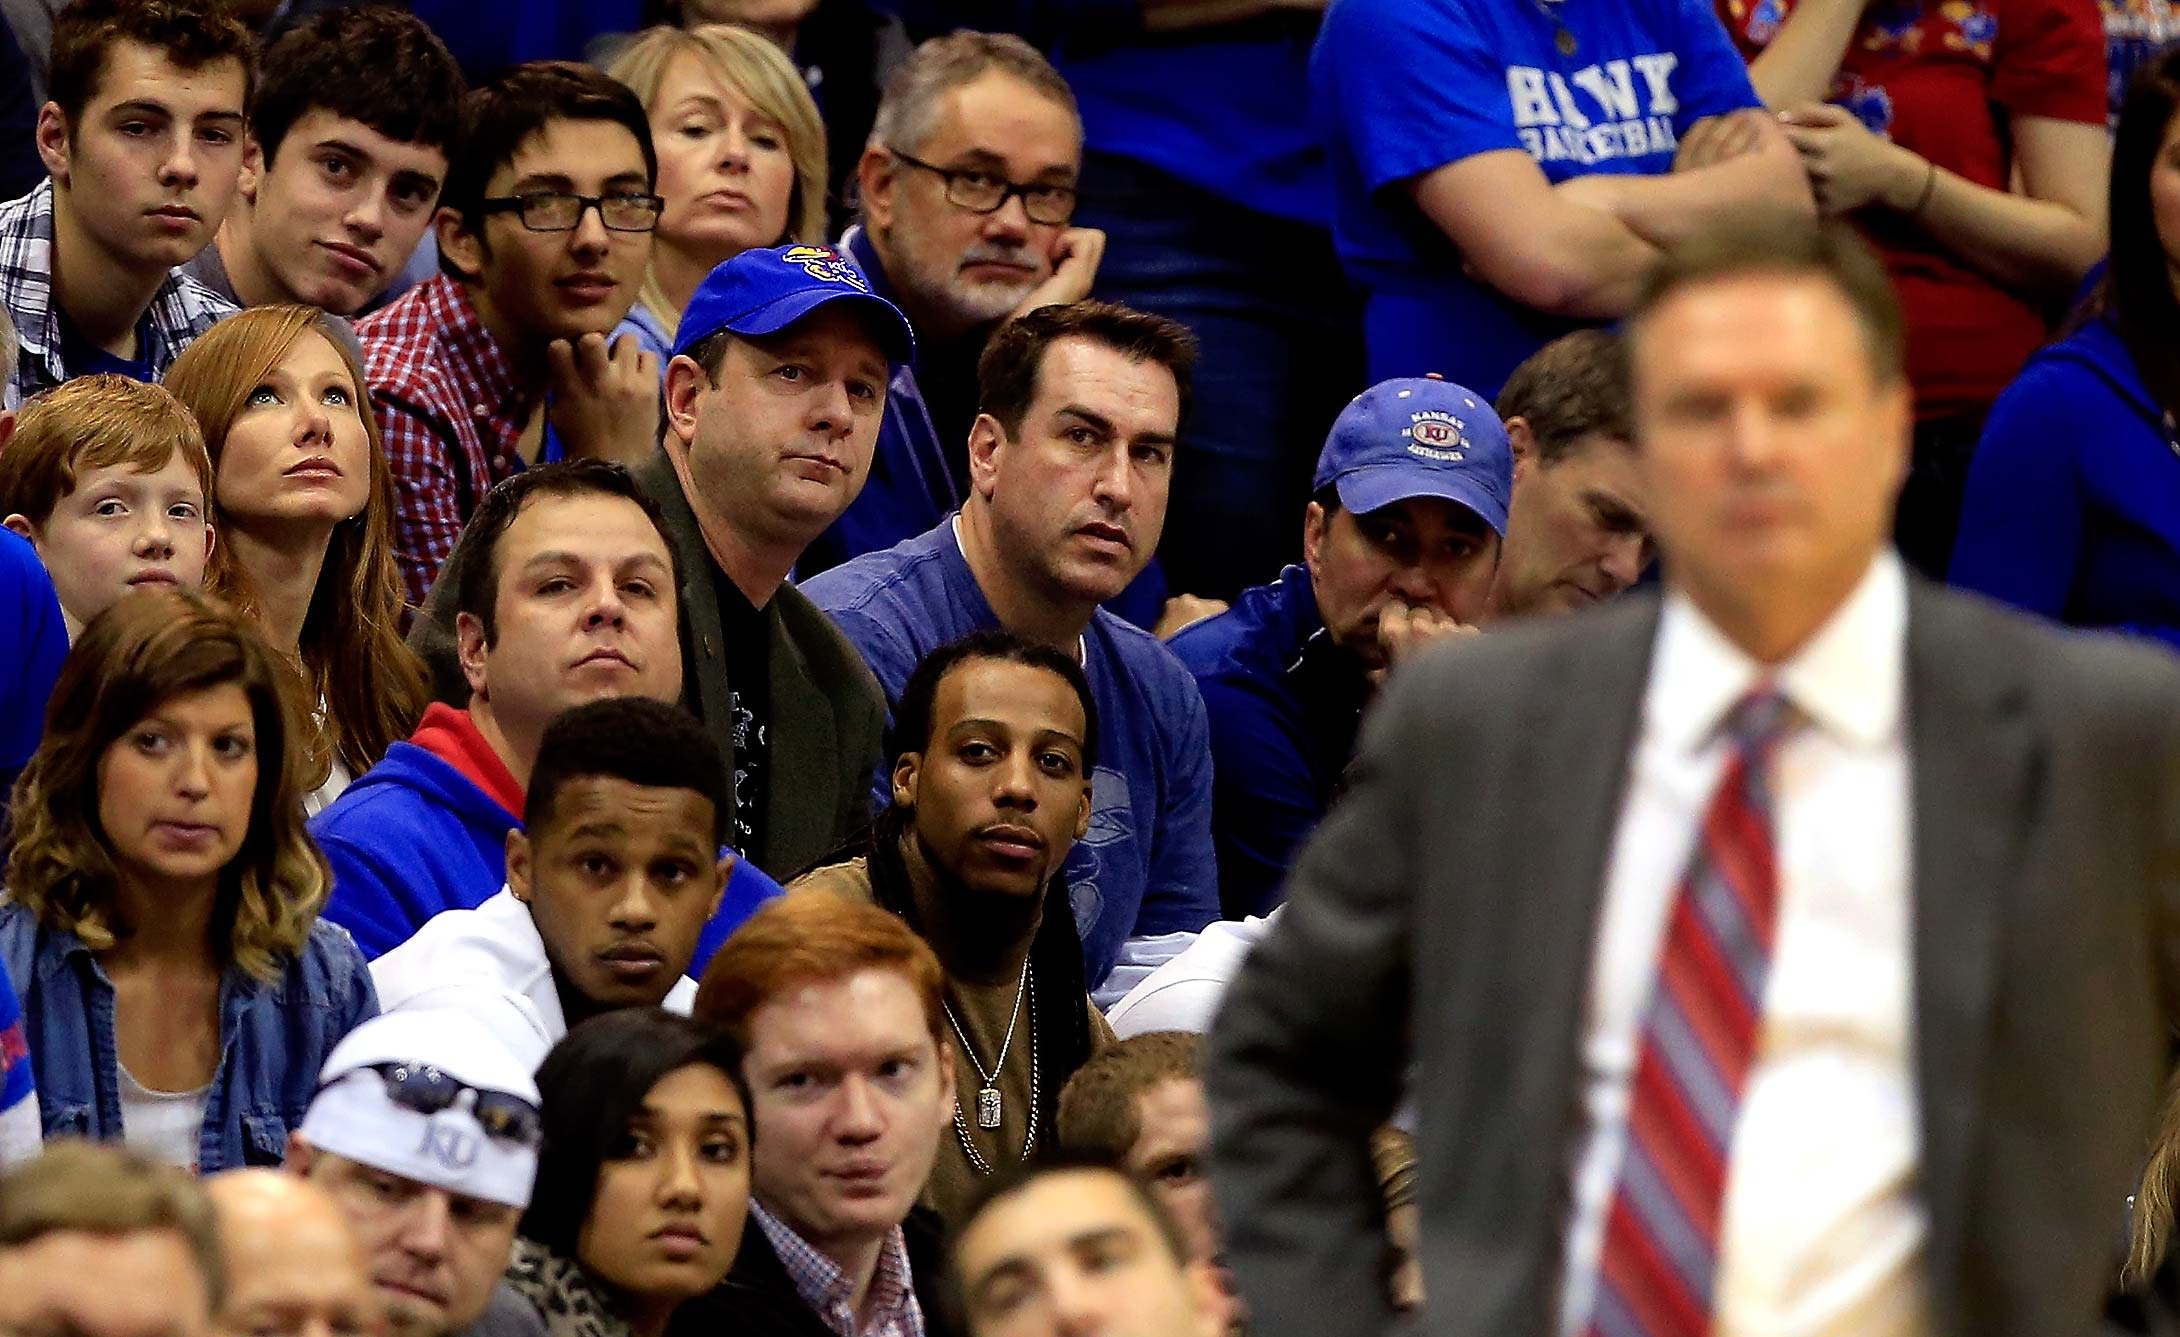 Rob Riggle watches from behind head coach Bill Self and the Kansas bench during a 2014 game vs. Kansas State at Allen Fieldhouse in Lawrence, Kansas.